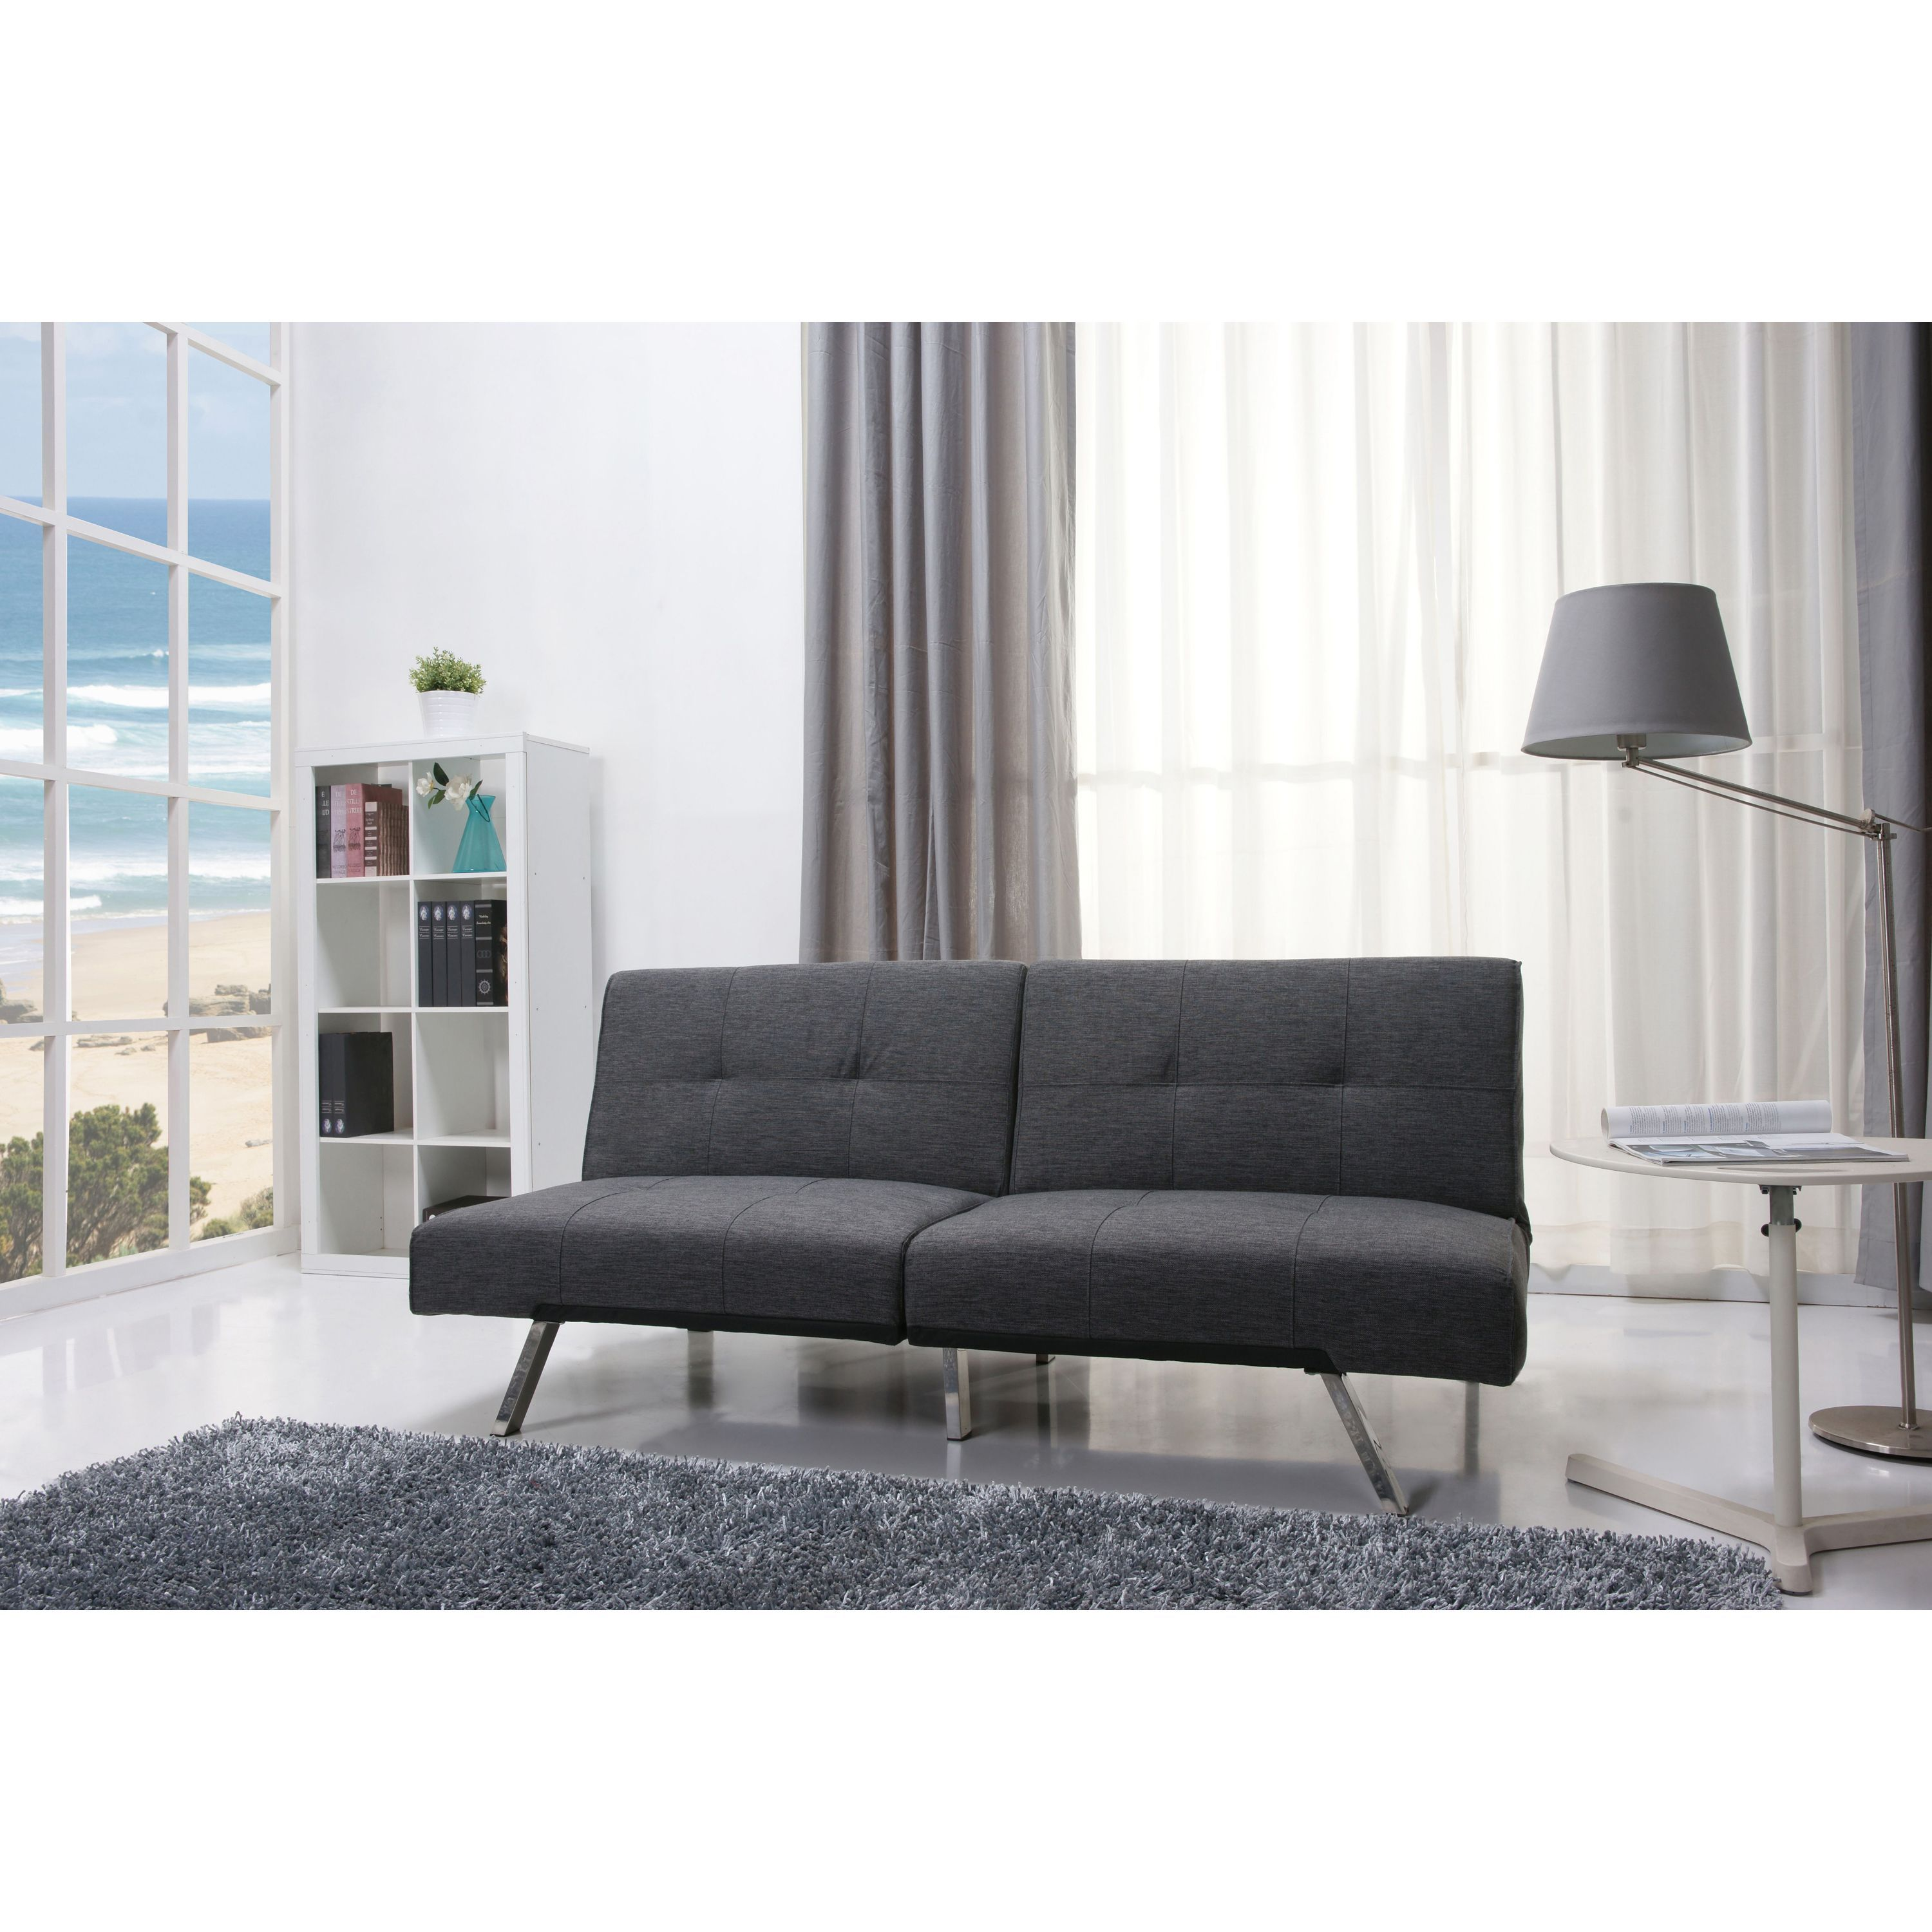 Marvelous Modern Sofa Bed Upholstered With Durable Premium Fabric With Spiritservingveterans Wood Chair Design Ideas Spiritservingveteransorg